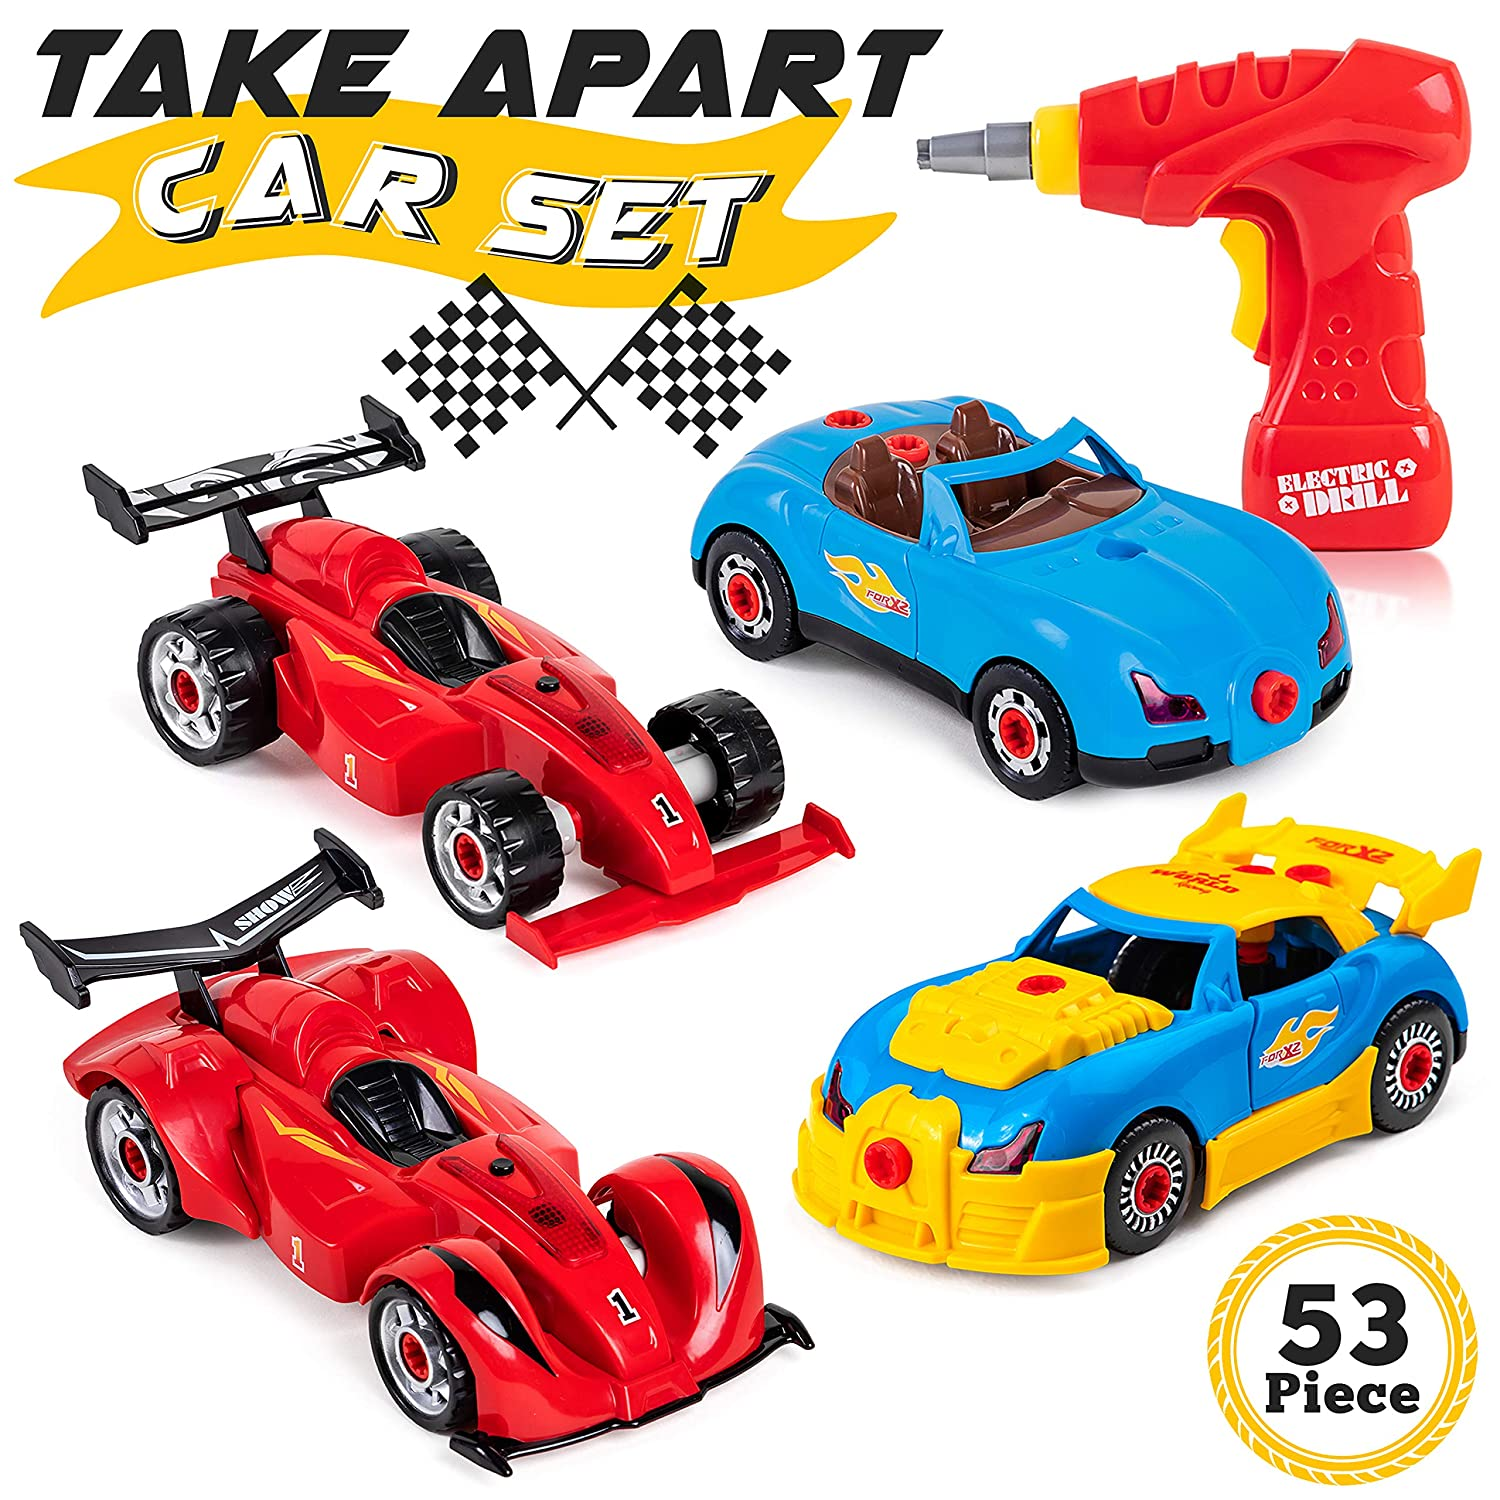 Take Apart Toy for Boys Accessories Drill Vehicle Assembly Construction Building STEM Kit for 3 4 5 6 7 8 Years Old Kids /& Toddlers 53-Piece Set of Racing Cars Great Gift for Children Tools